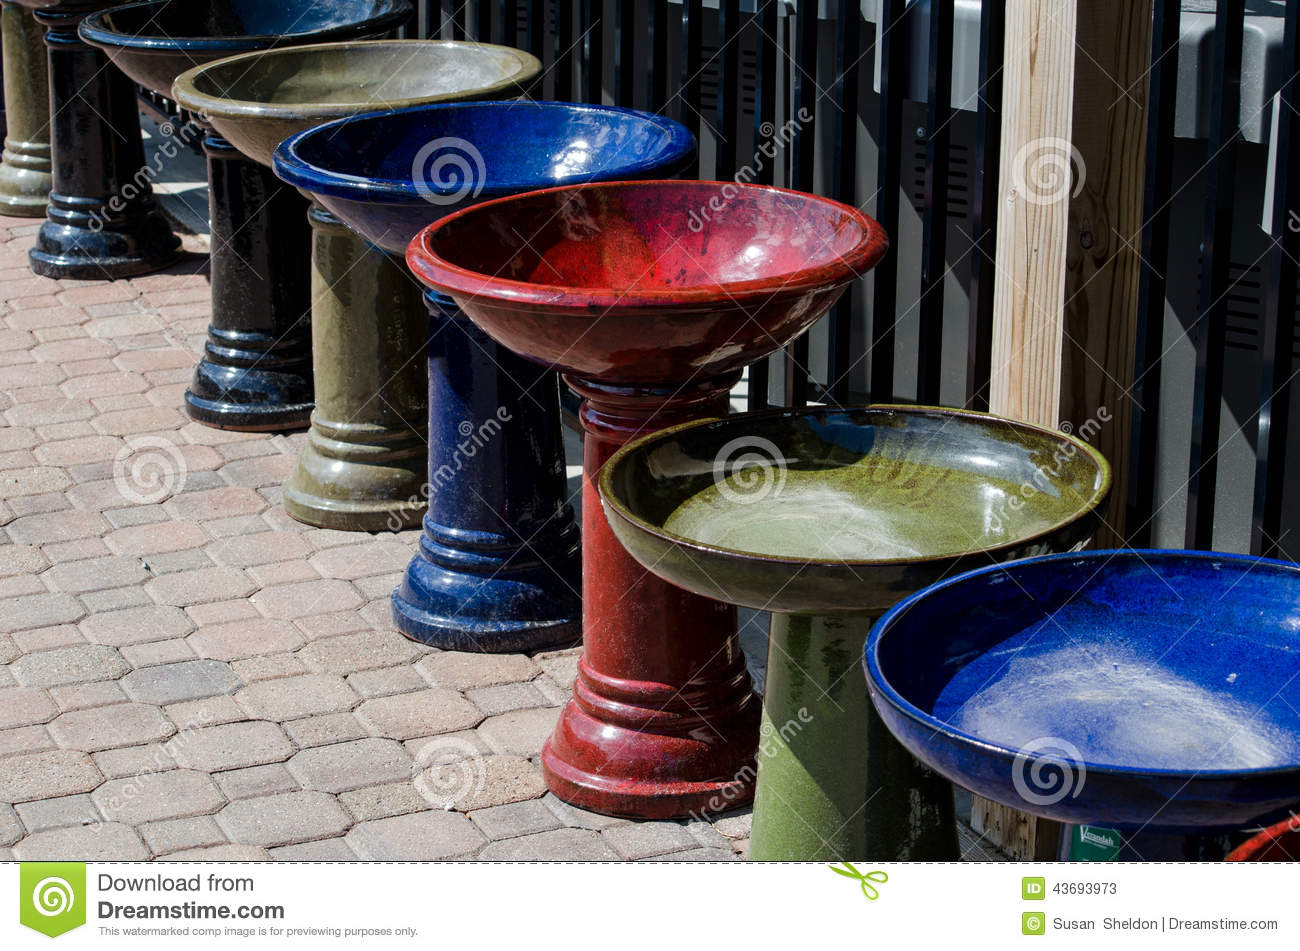 Colorful bird baths stock image. Image of bird, green - 43693973